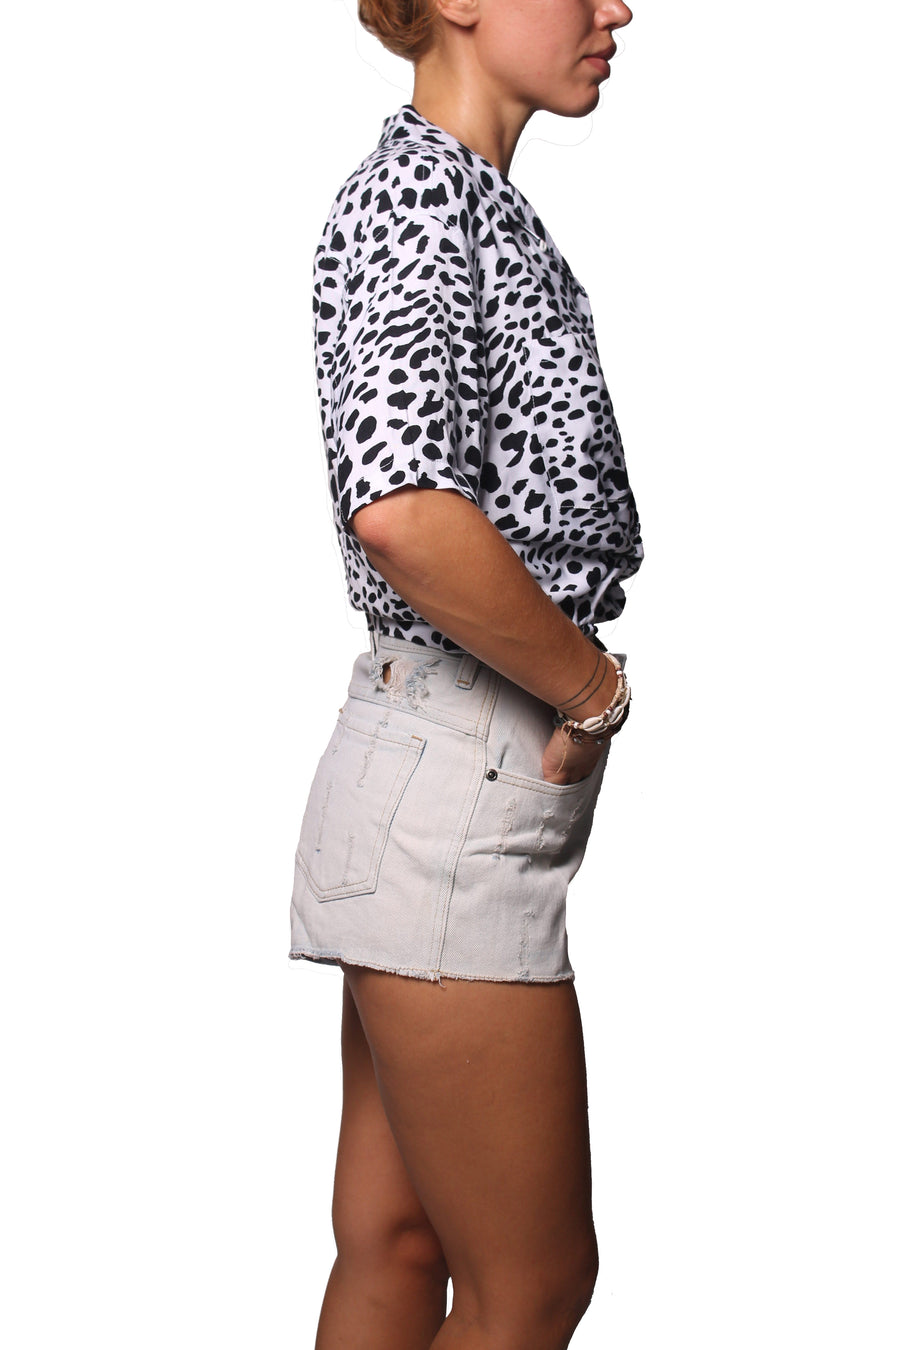 Rain Crop Shirt Big Leopard White Black